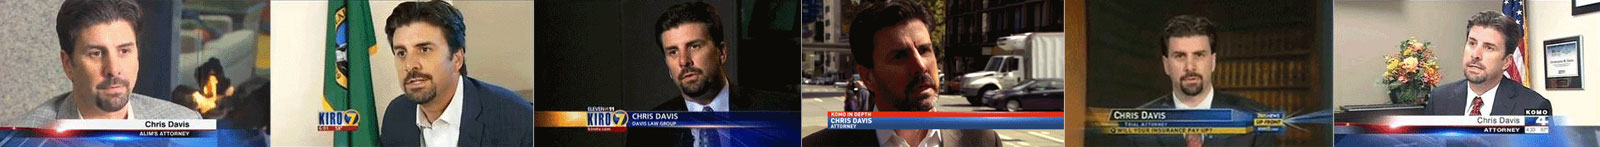 Videos Thumbnails of Chris Davis in the News